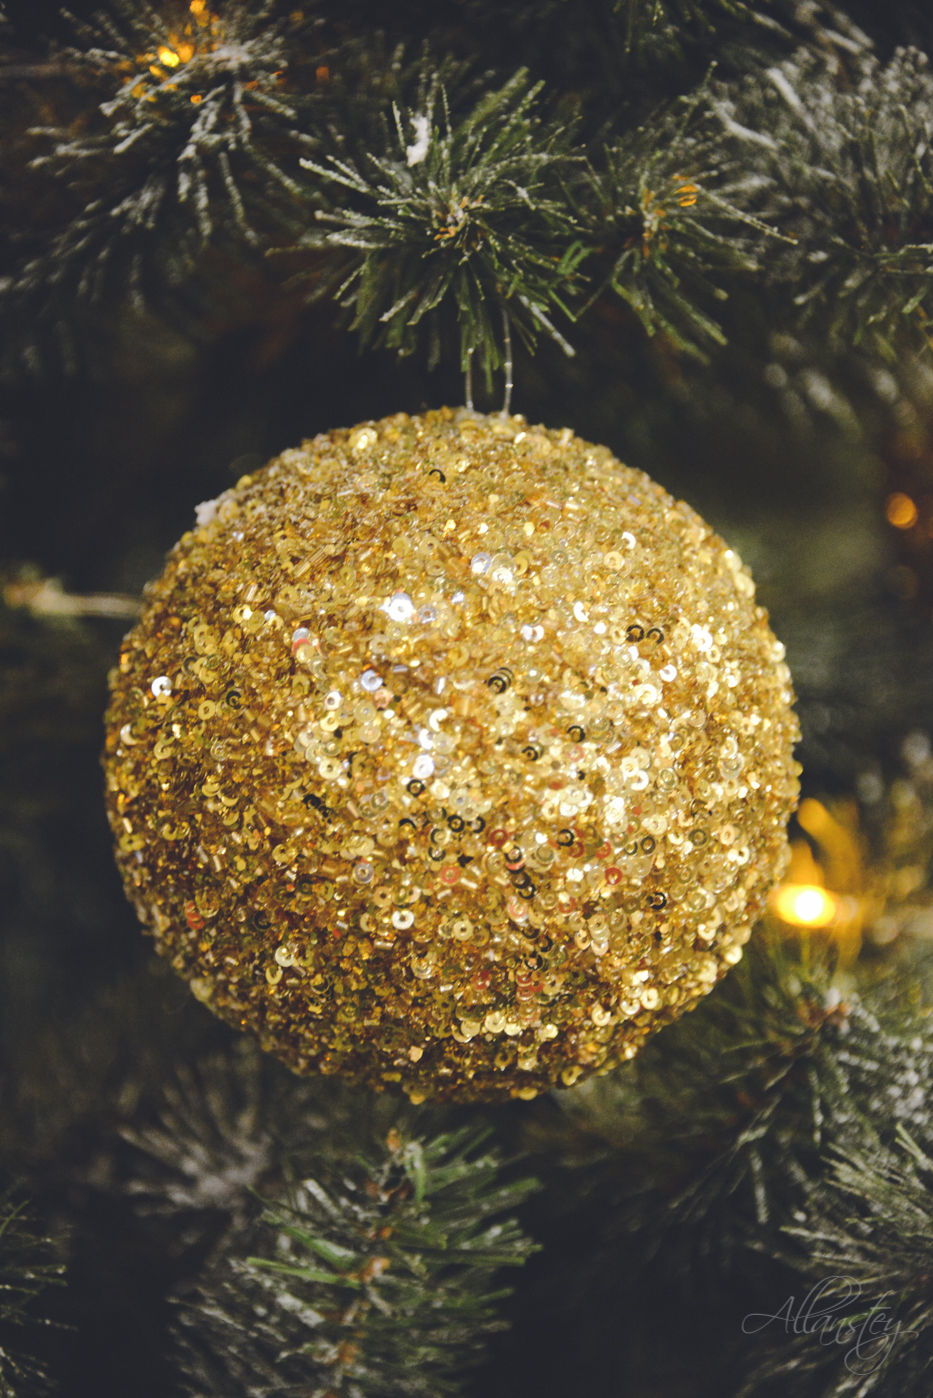 Golden glitter Christmas ball decoration closeup on Christmas tree